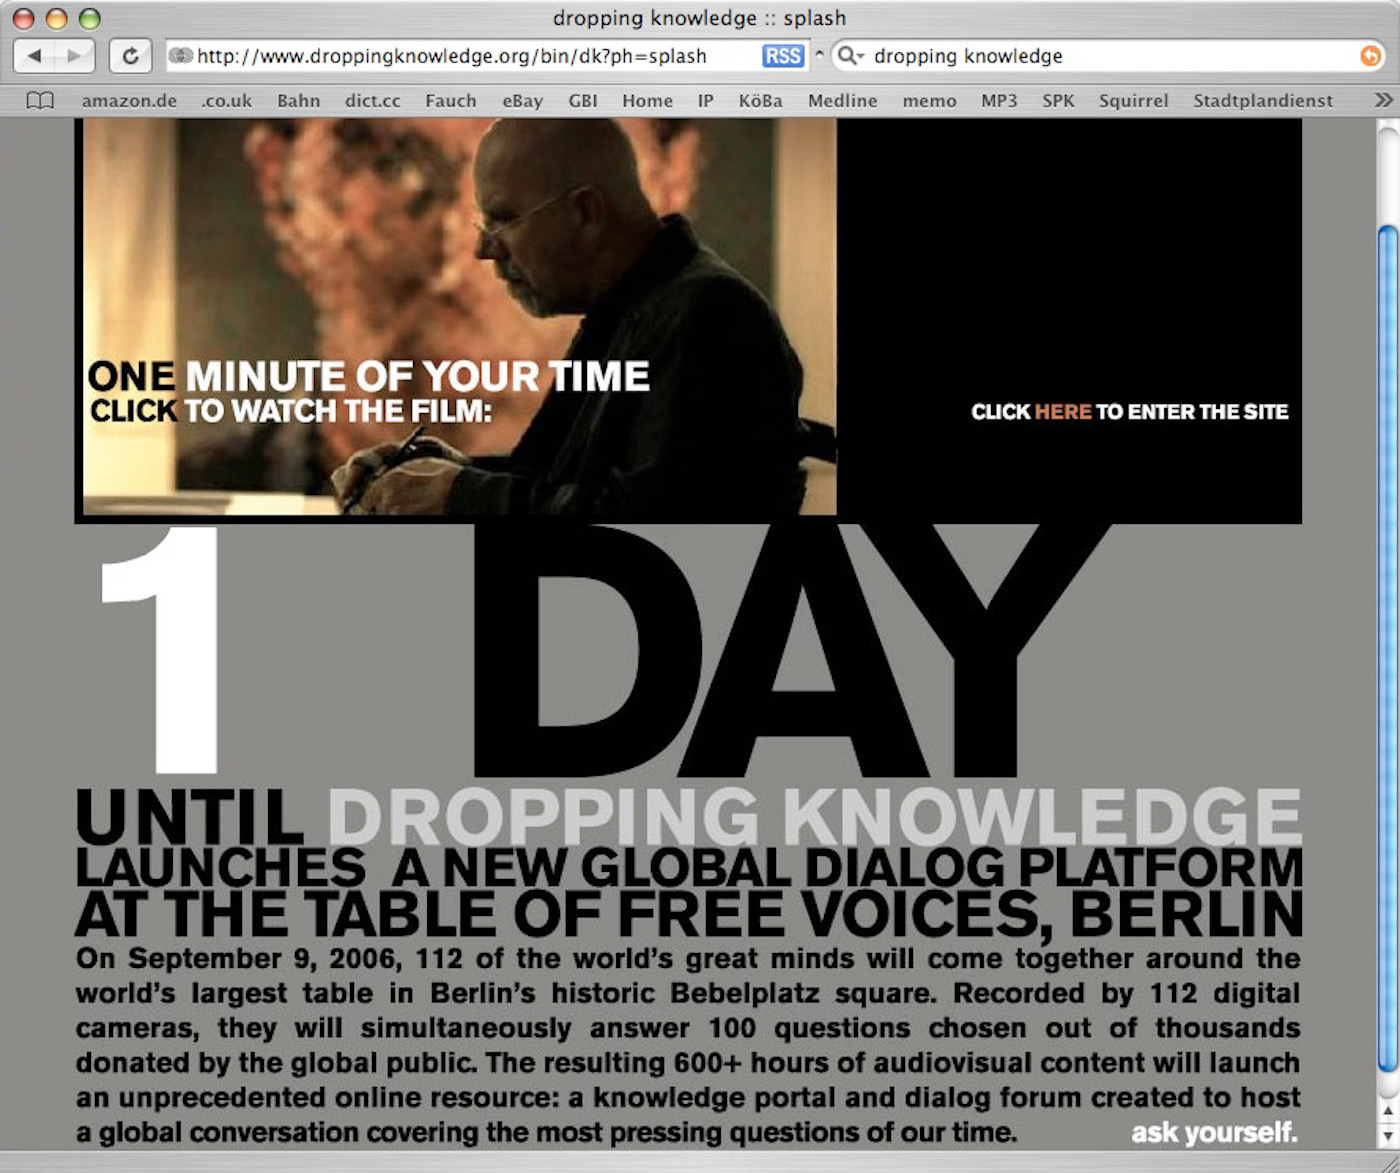 z_mark_benecke_dropping_knowledge_berlin_bebelplatz_opernplatz_unter_den_linden_table_of_free_voices - 5.jpg